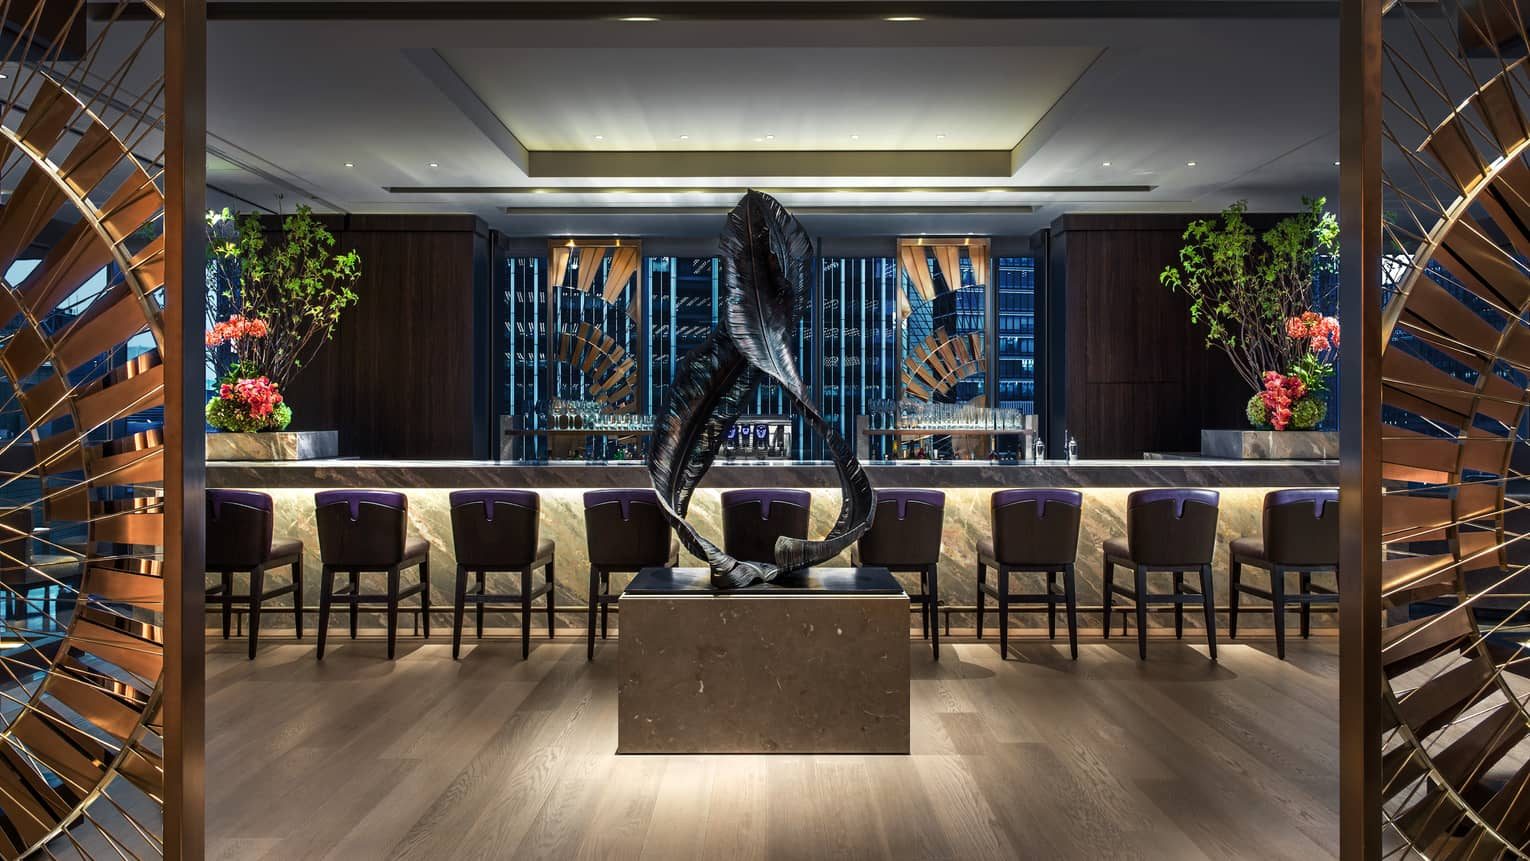 Large modern sculpture of two twisted black feathers in front of Motif bar, stools